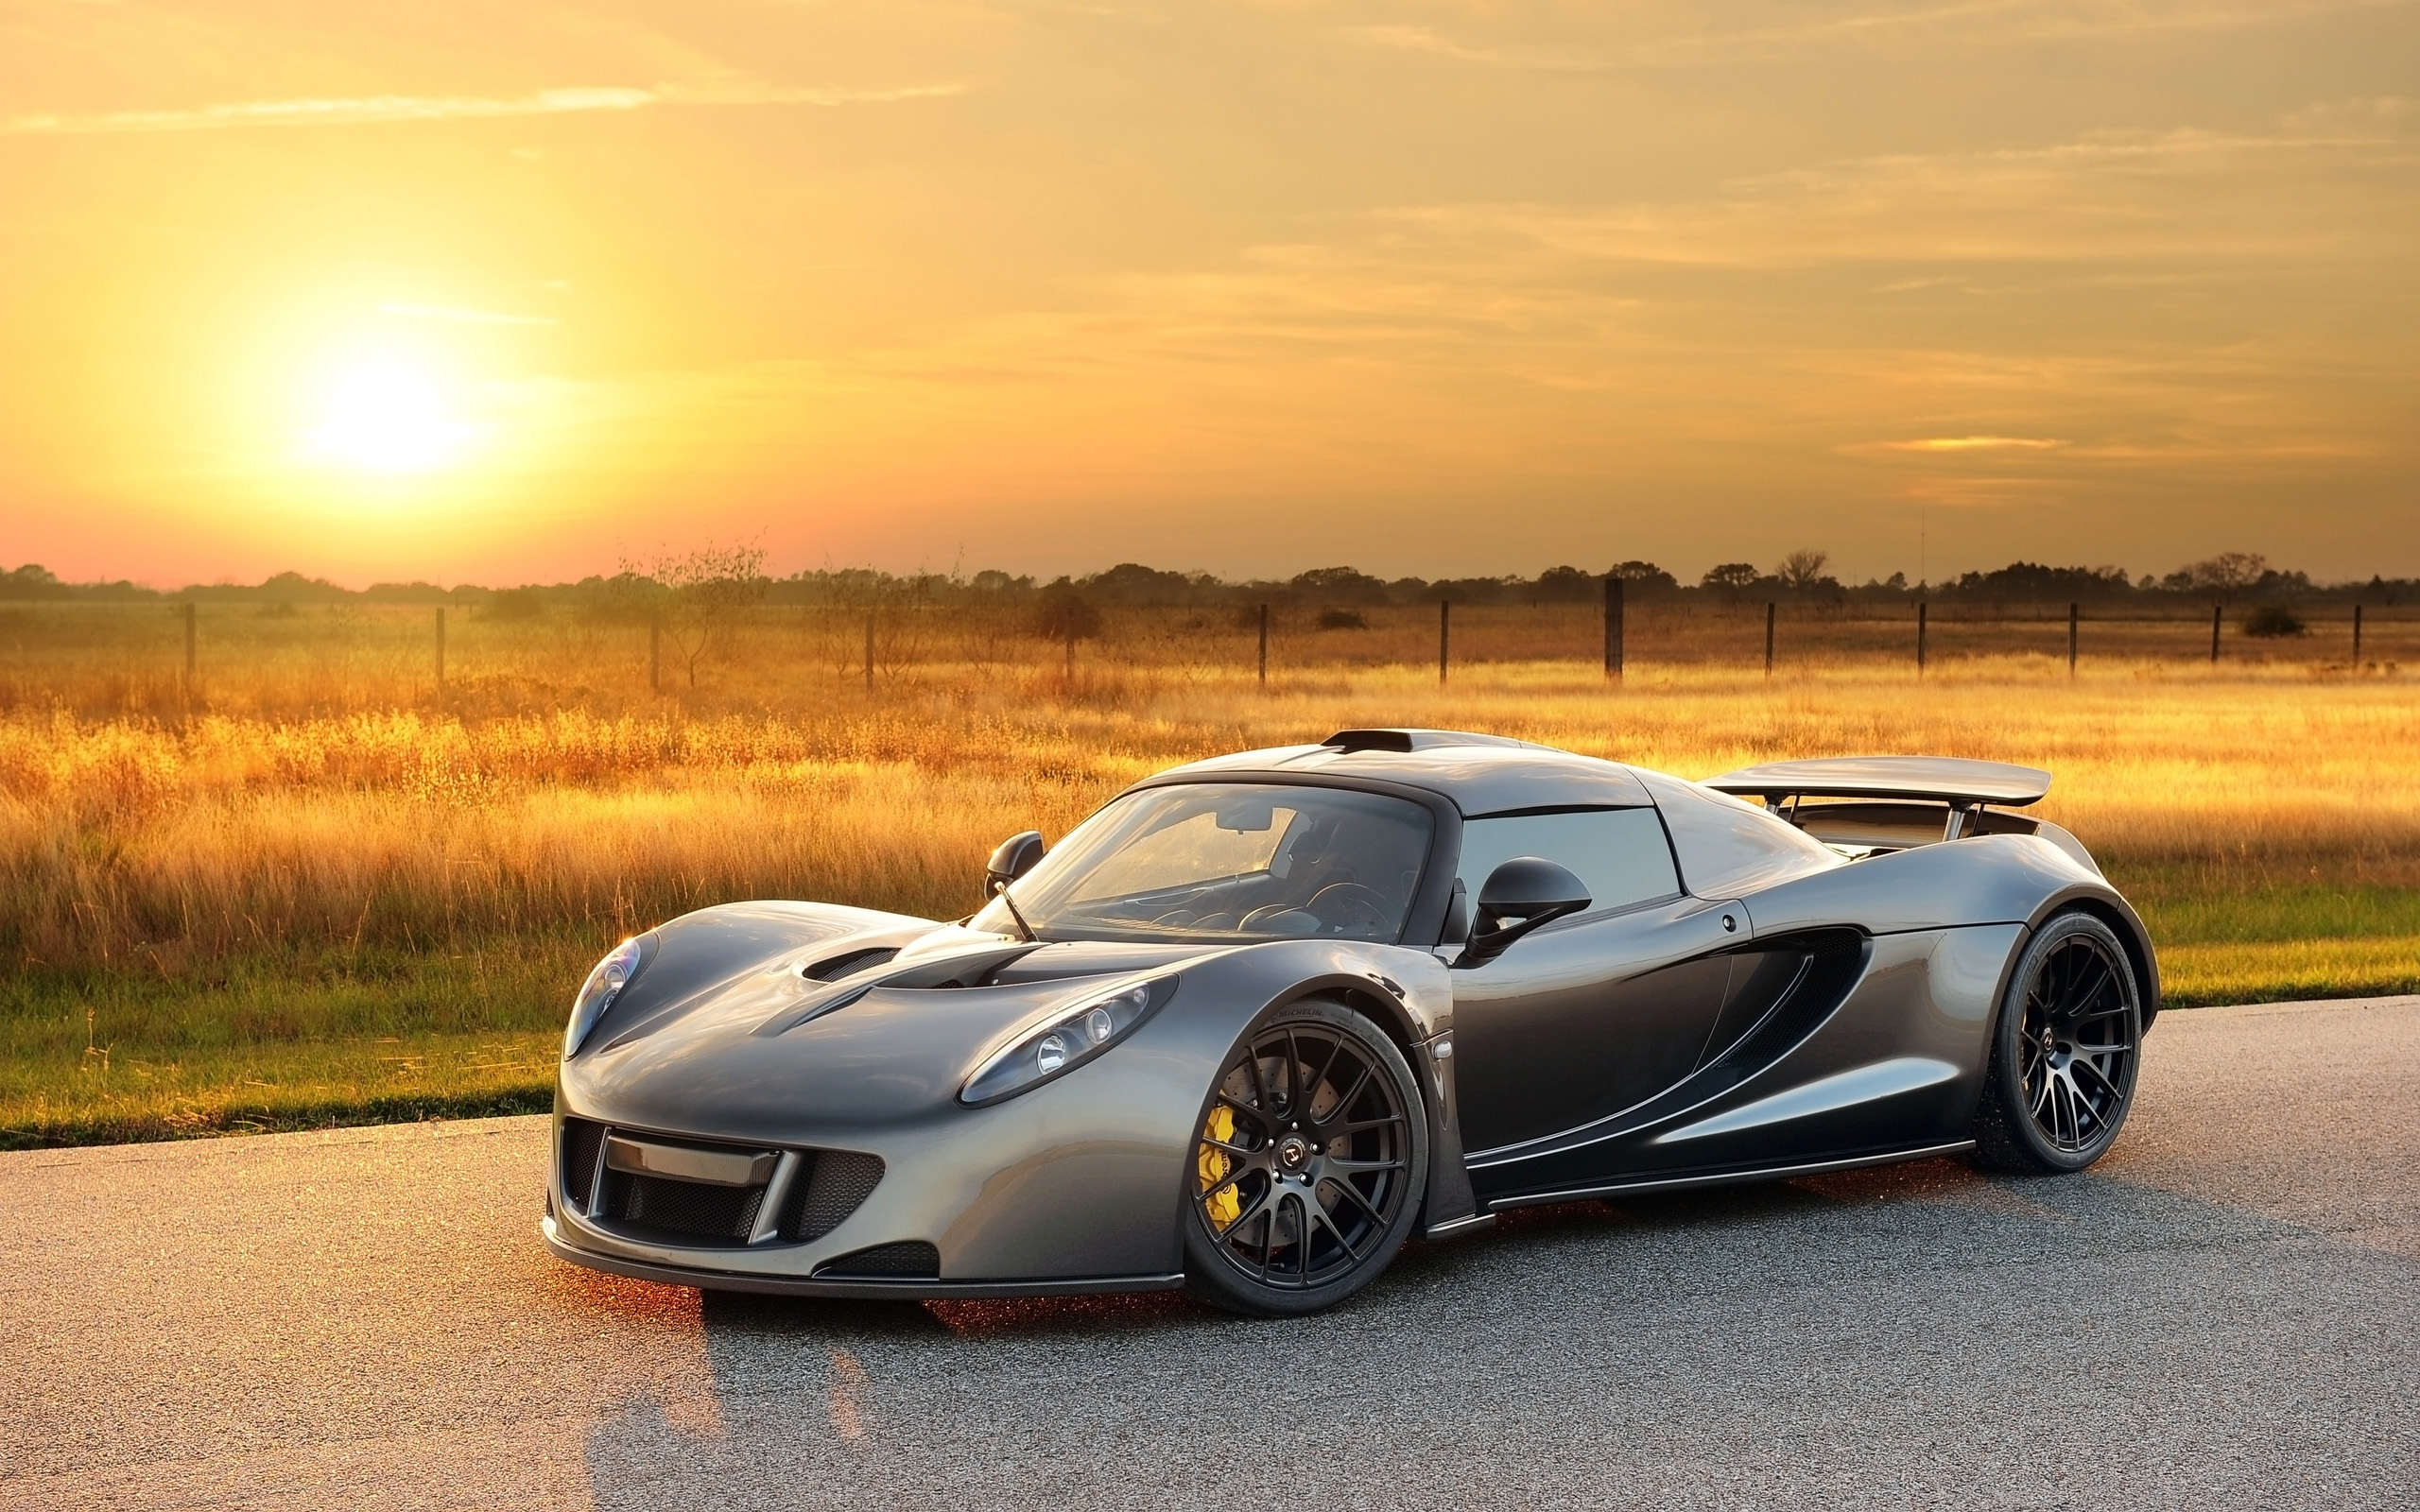 hennessy venom gt full hd wallpaper and background image